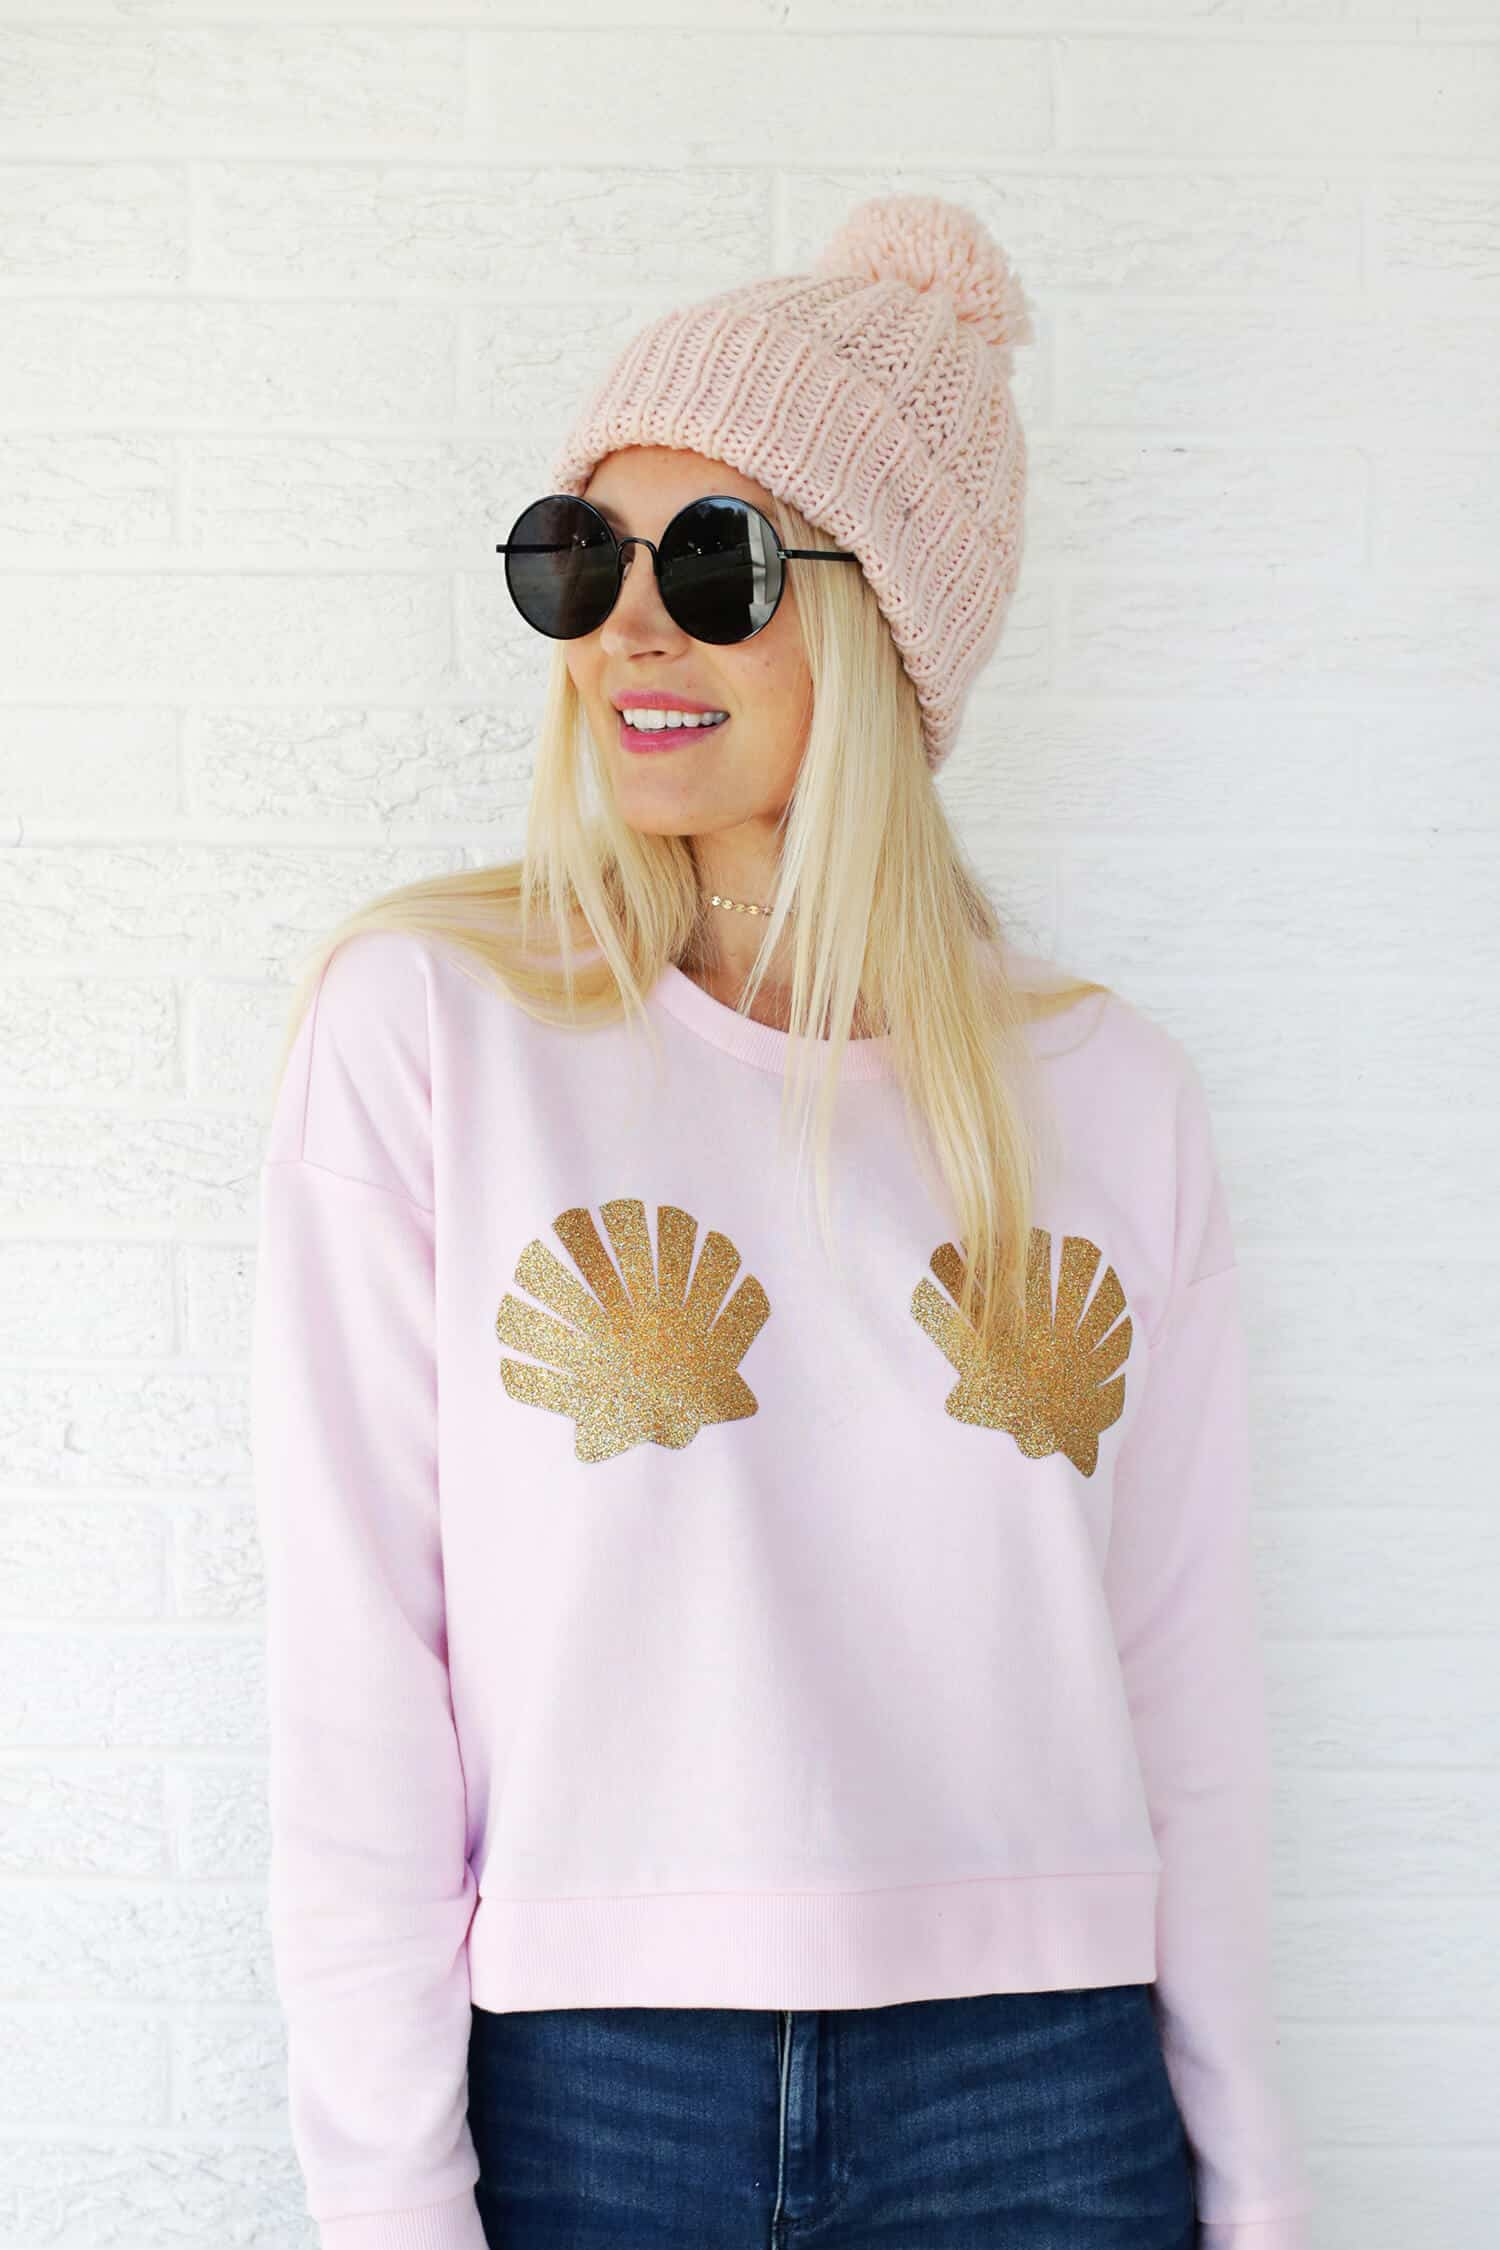 Mermaid shell sweatshirt diy with printable click through for tutorial 1